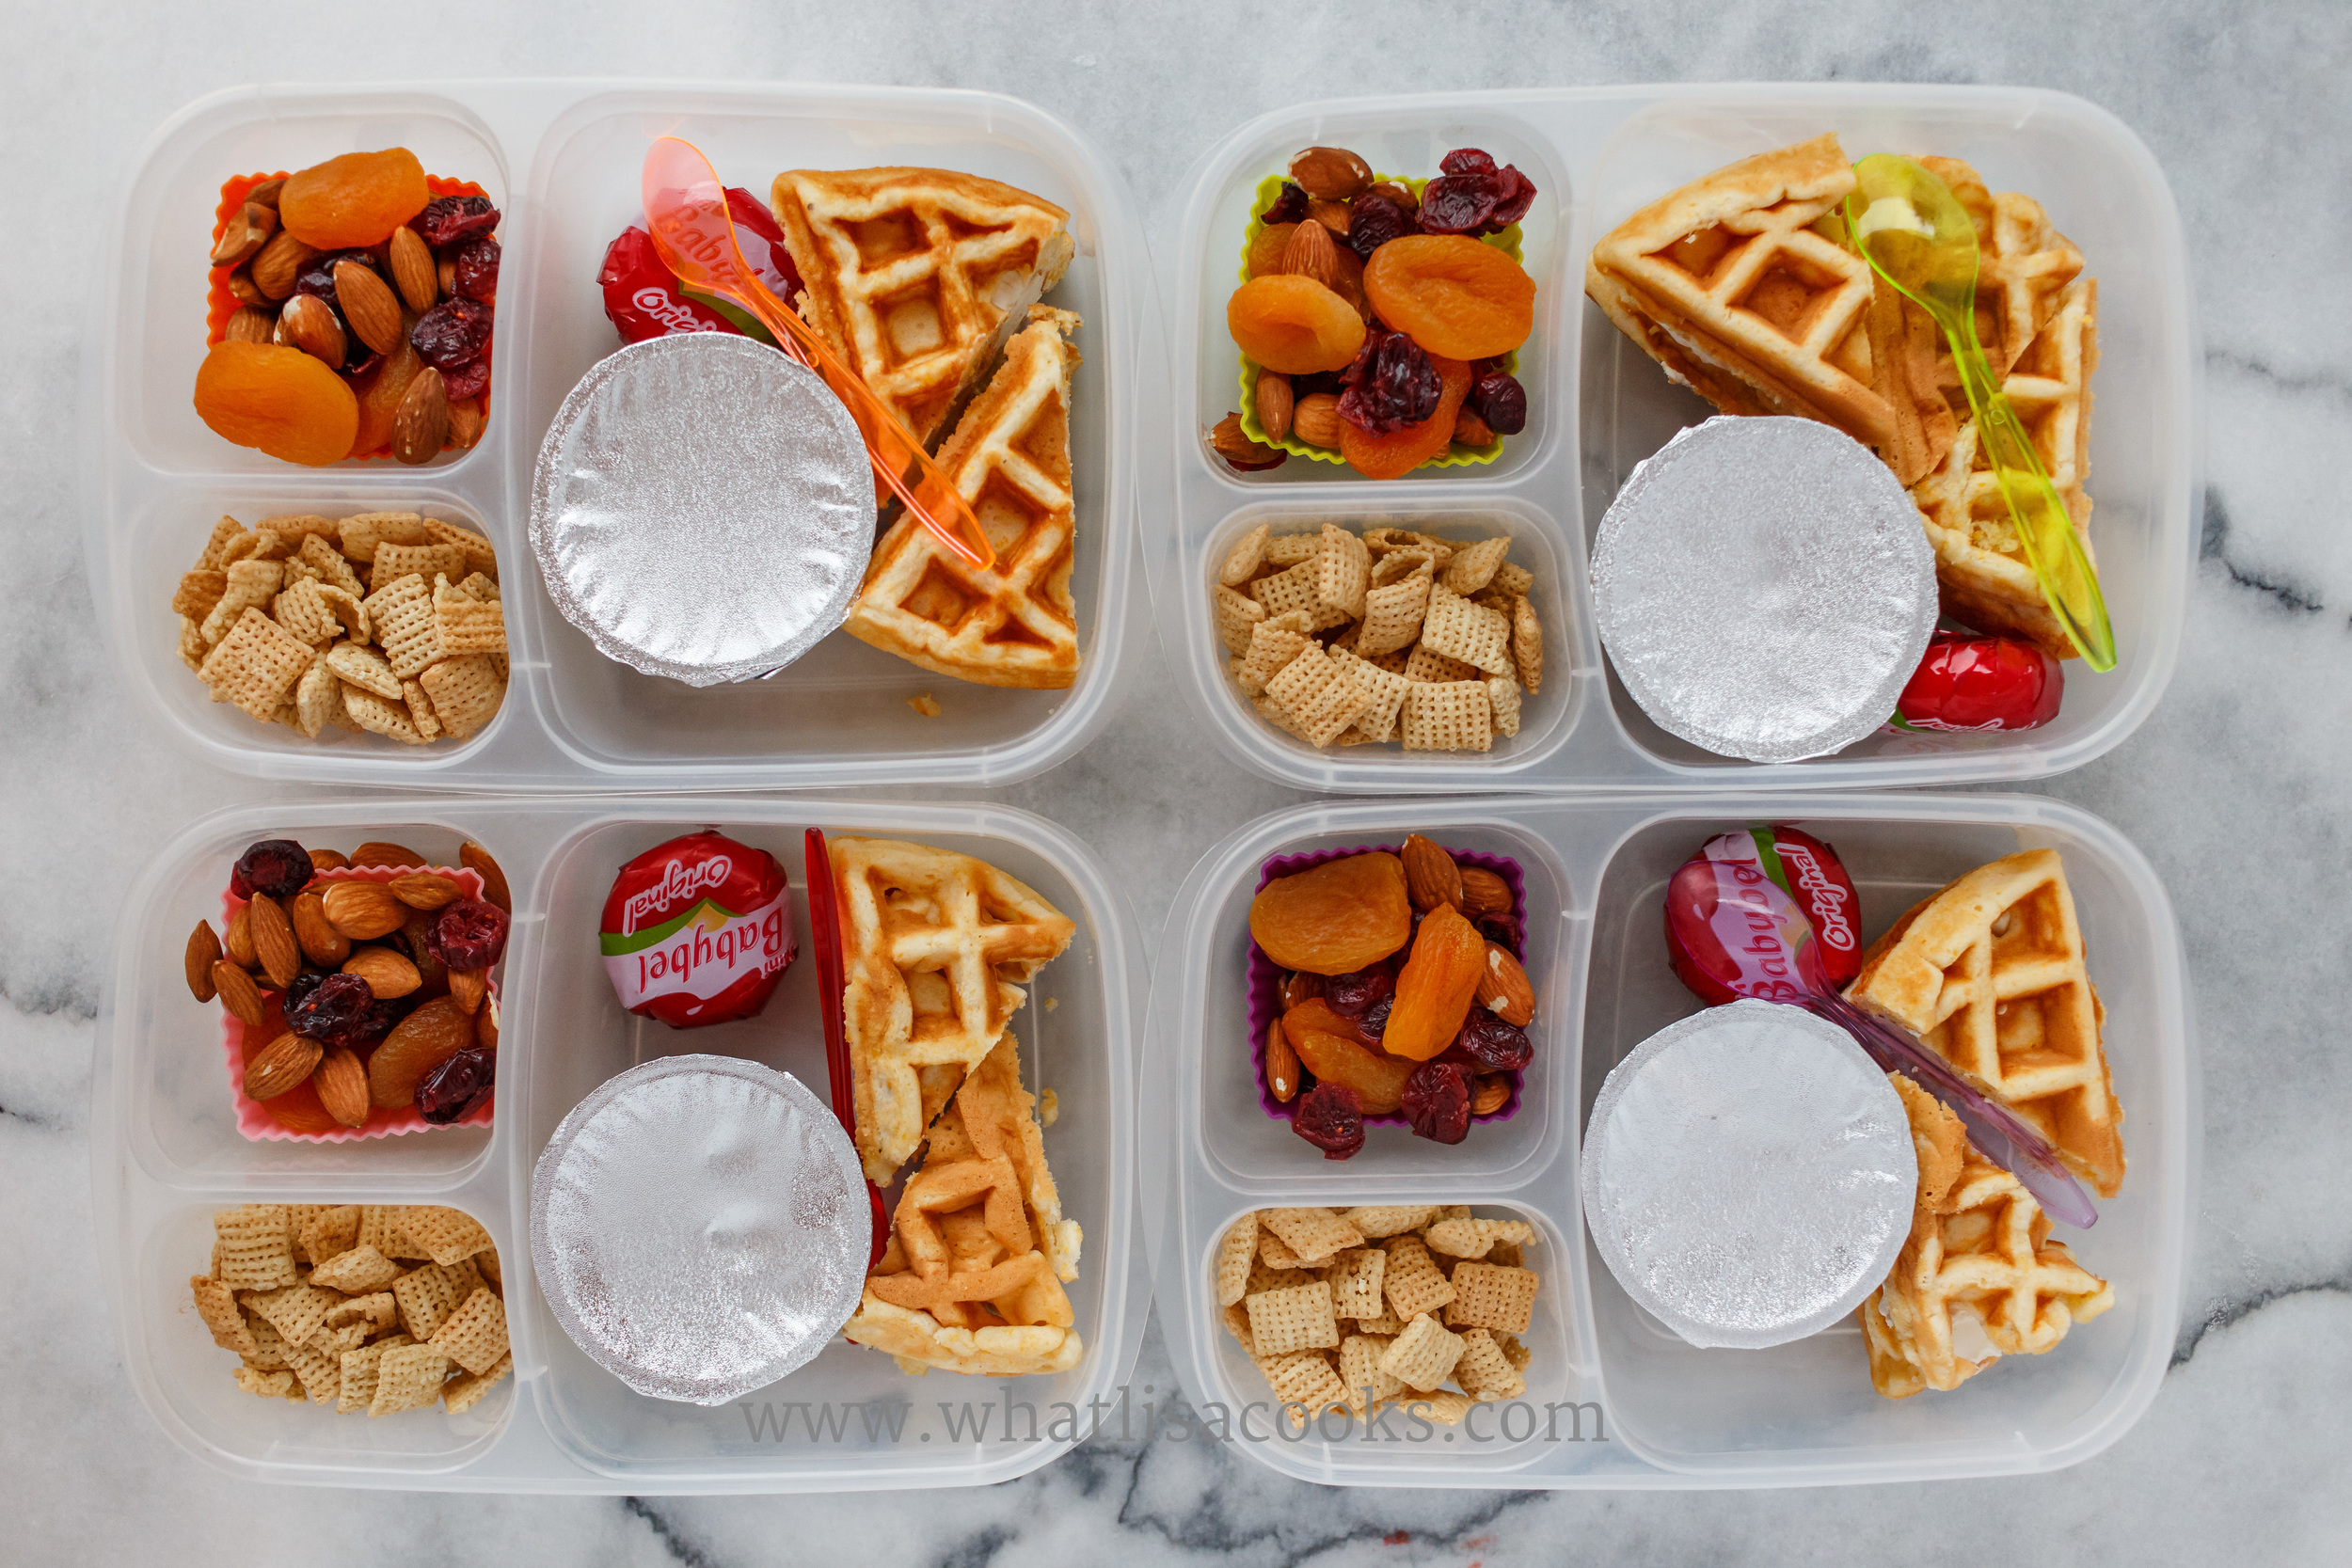 Waffle sandwiches with cream cheese or butter, applesauce, cheese, cereal, apricots and almonds.